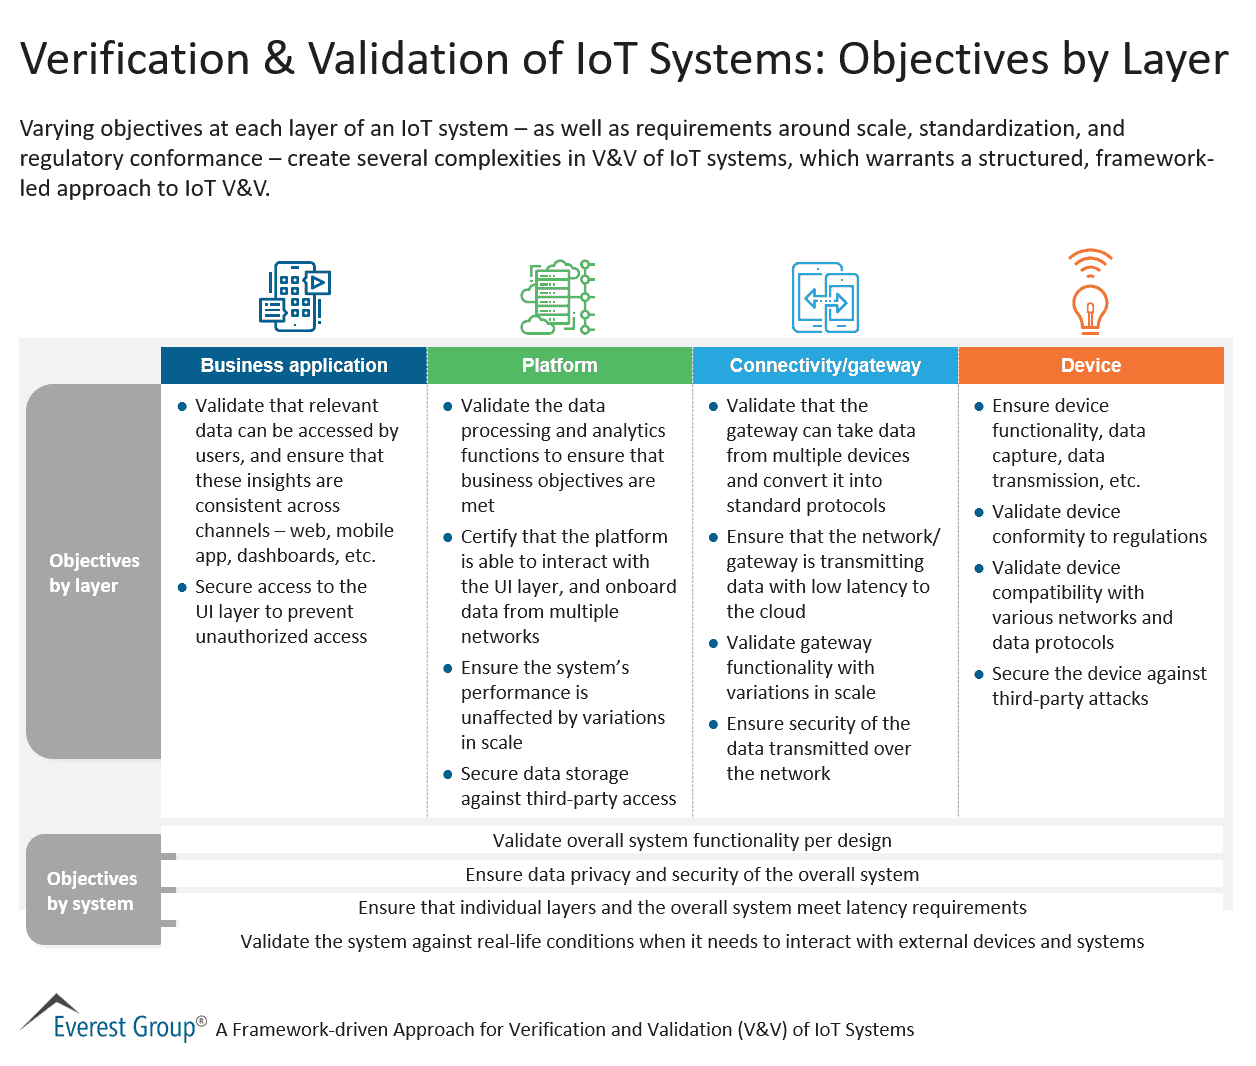 Verification & Validation of IoT Systems - Objectives by Layer